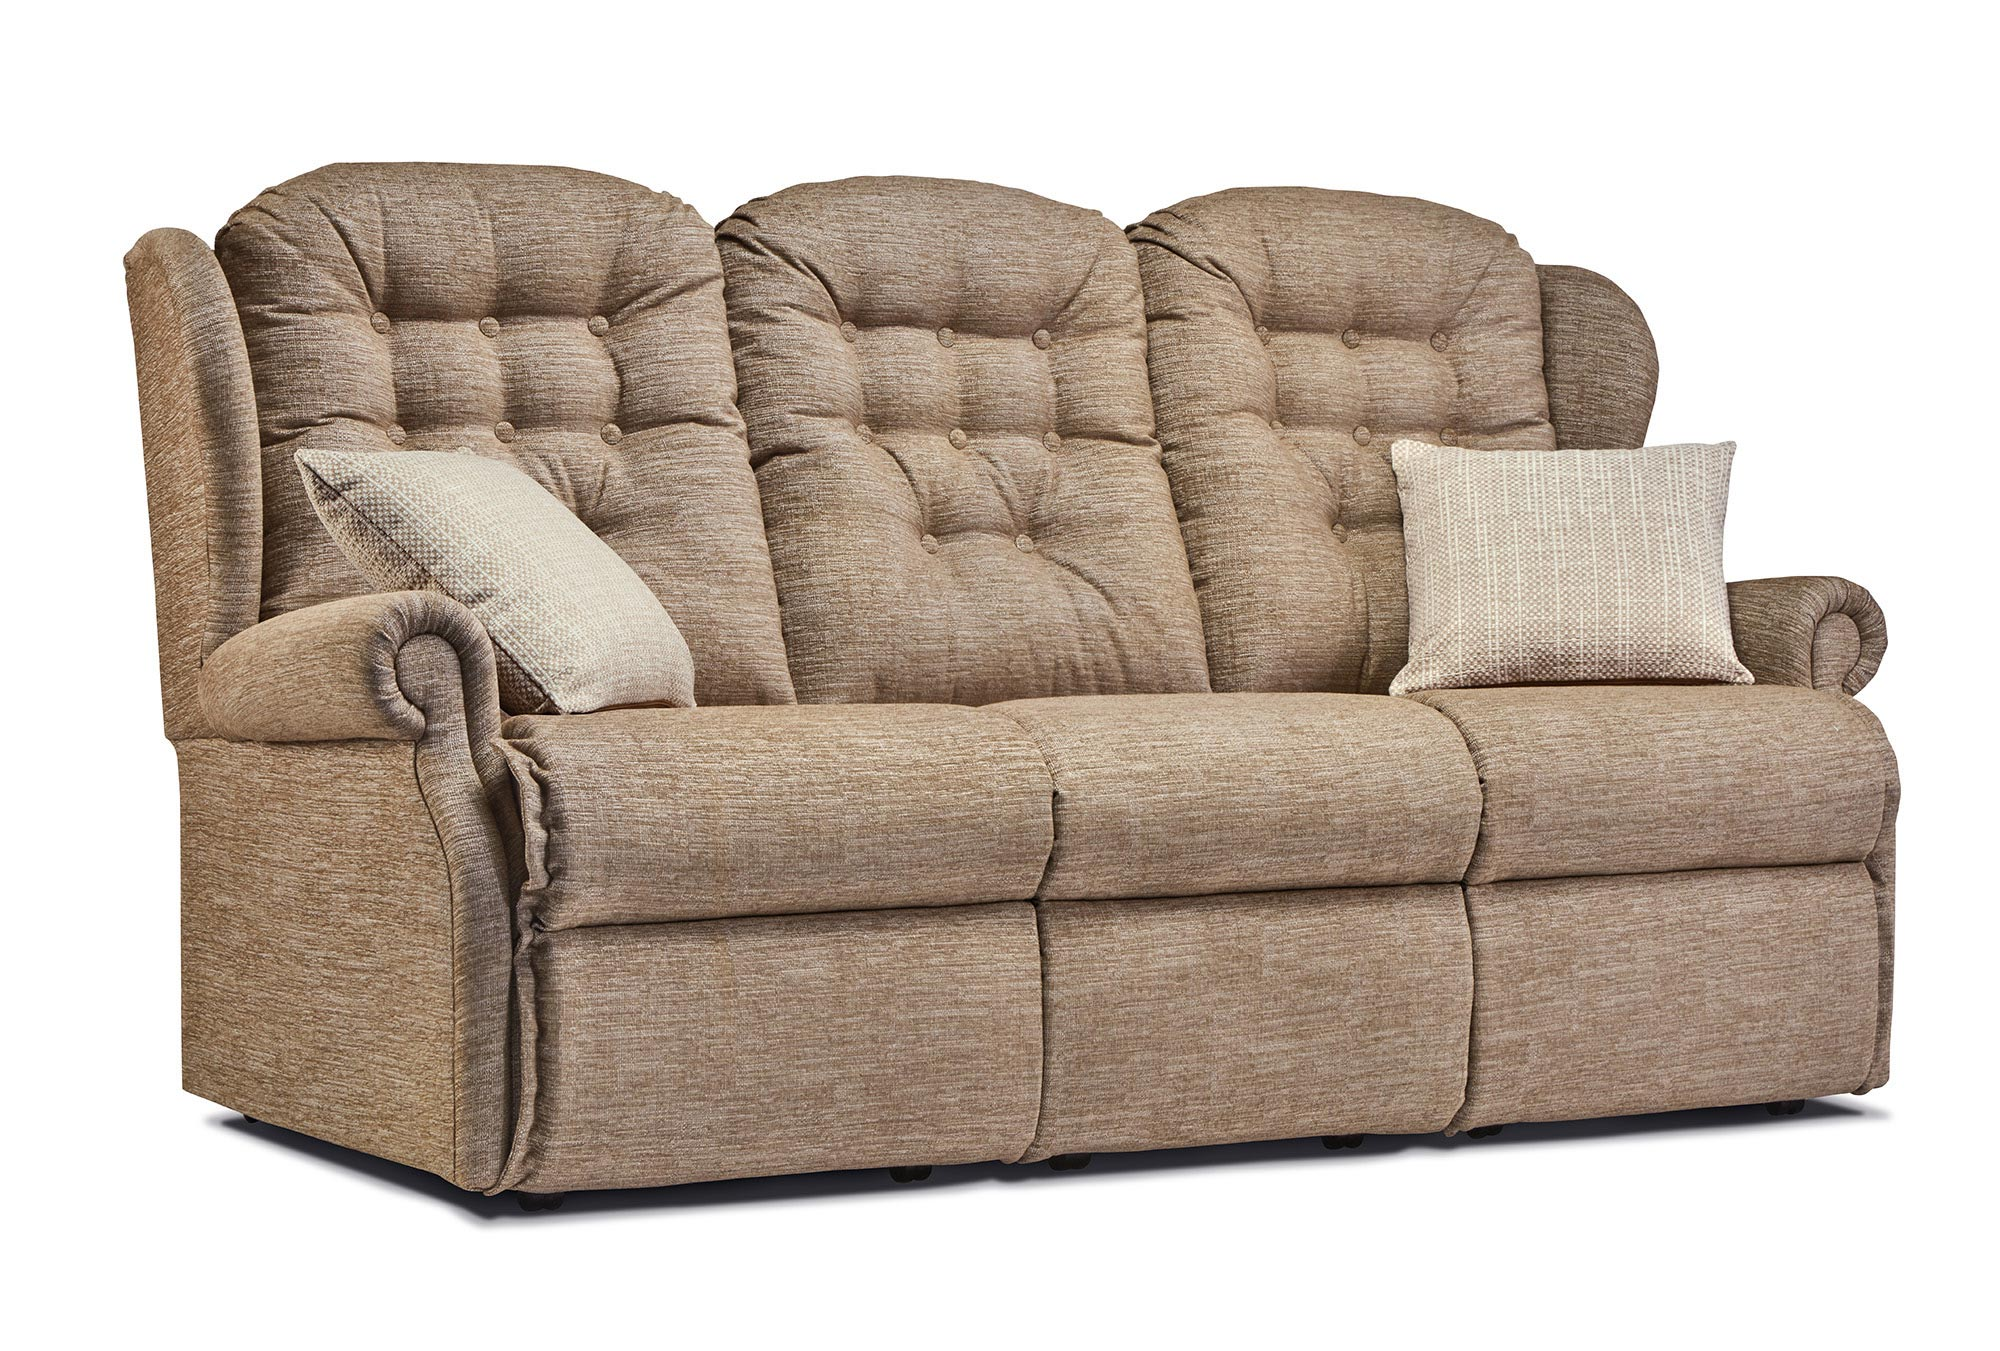 Lynton Small Fabric Fixed 3 Seater Settee Sherborne